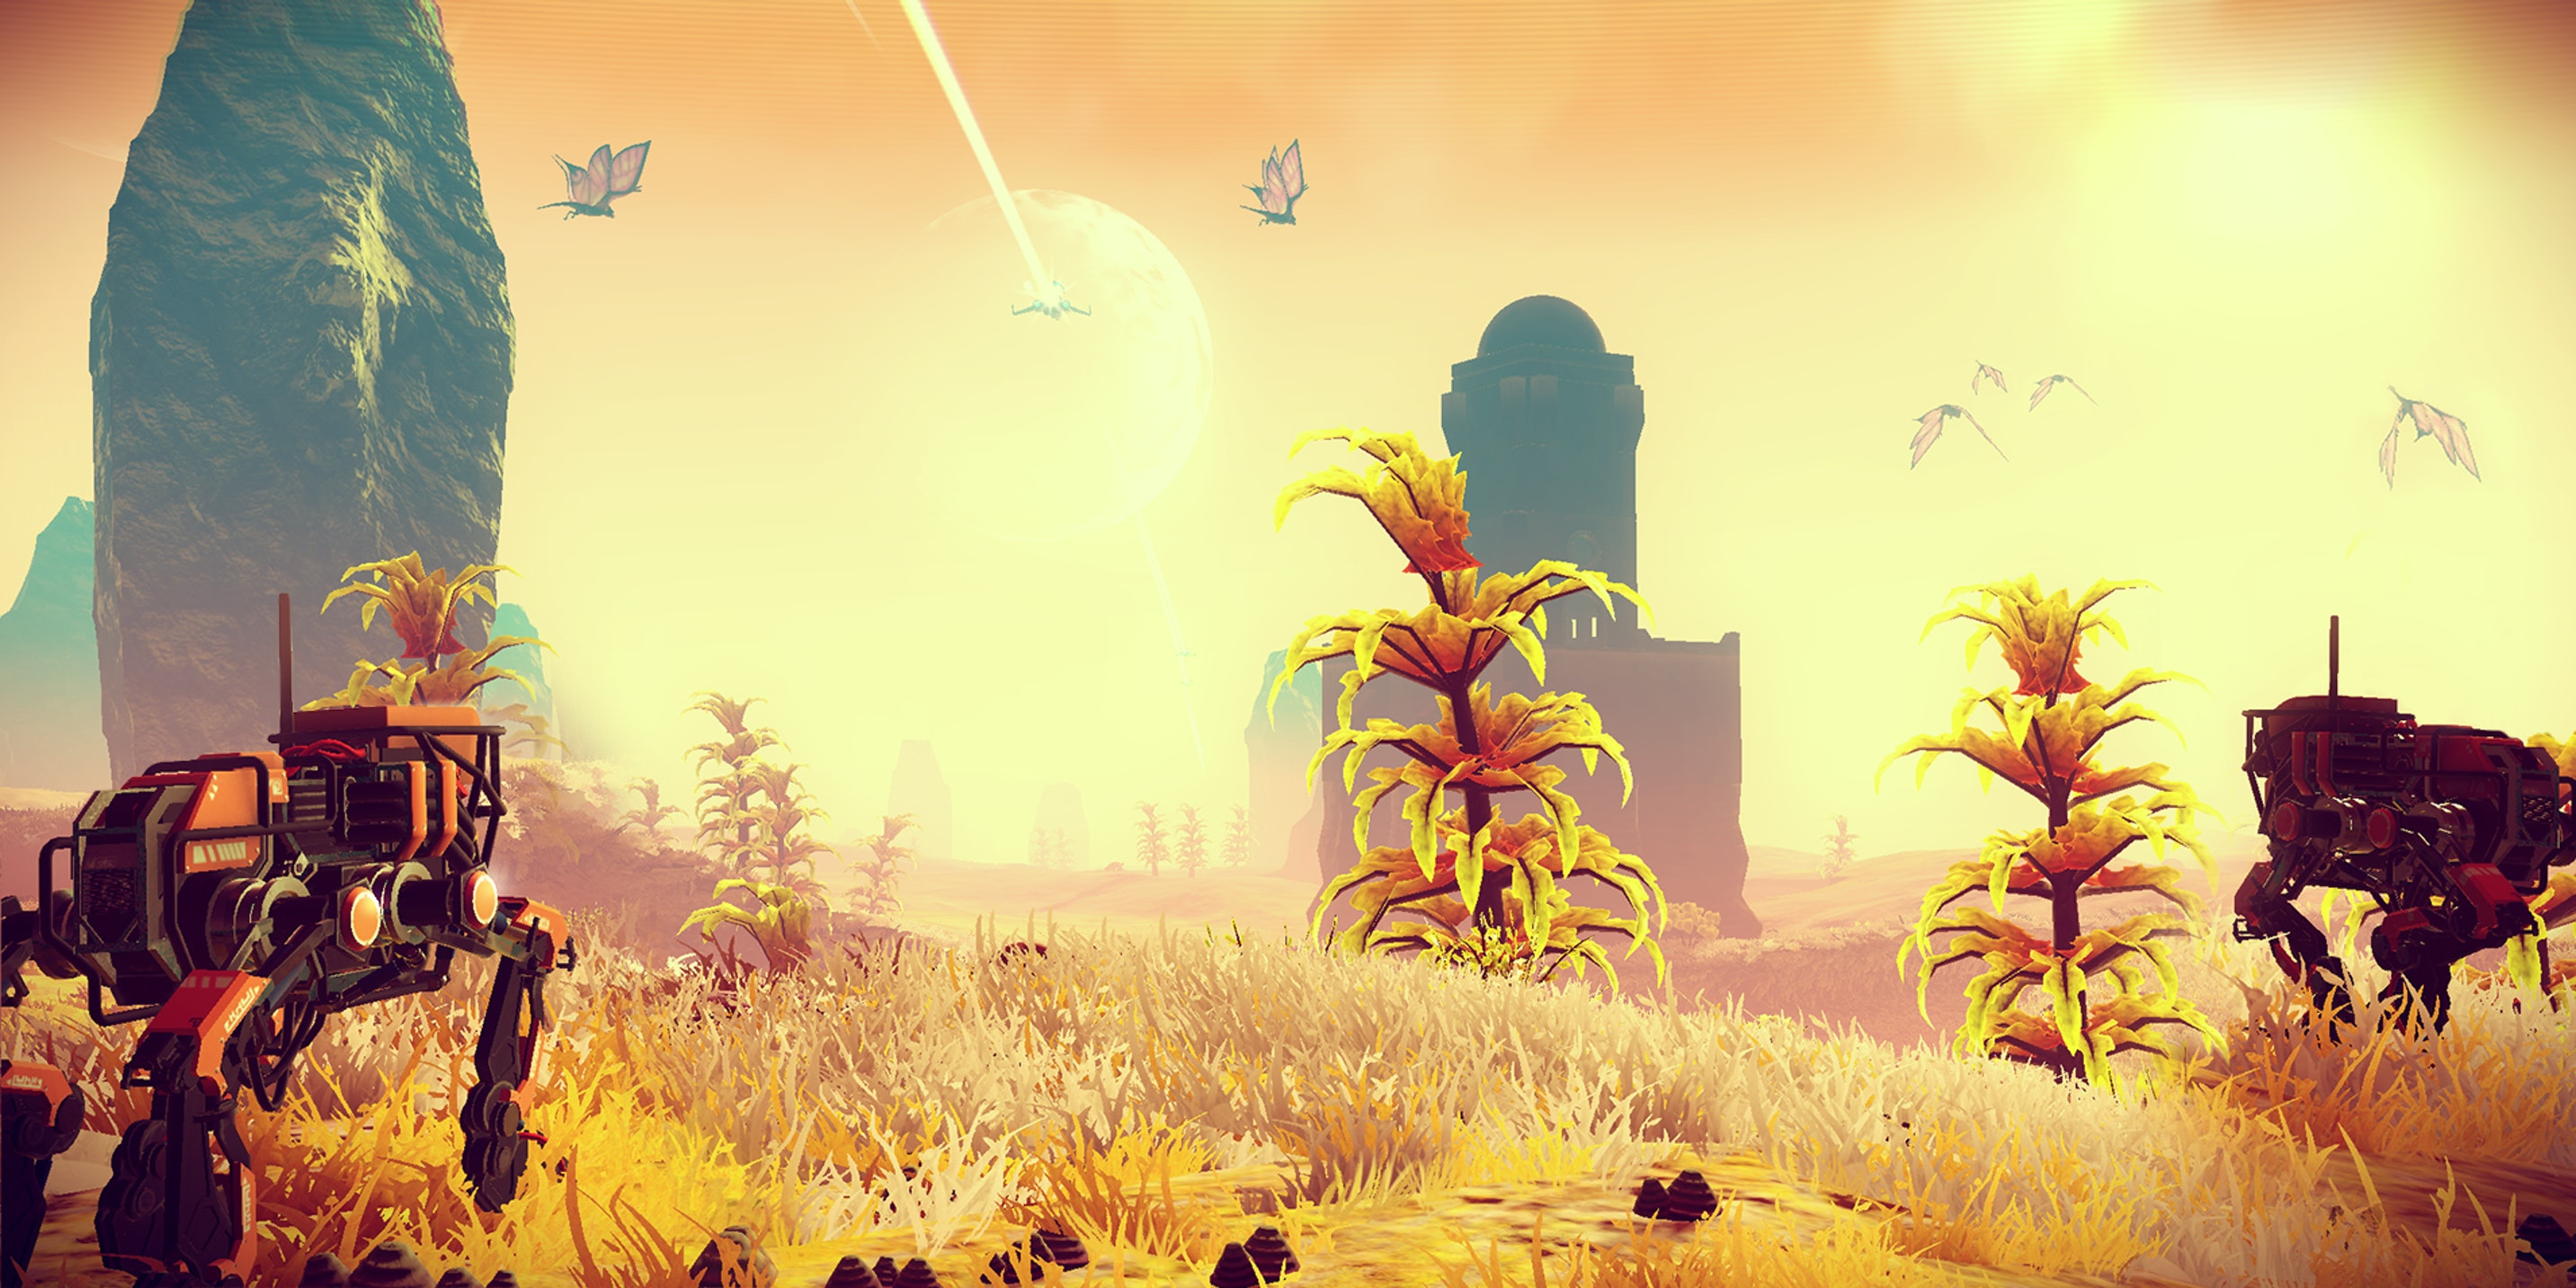 Can 'No Man's Sky' and 'Star Citizen' Possibly Live Up to the Hype?